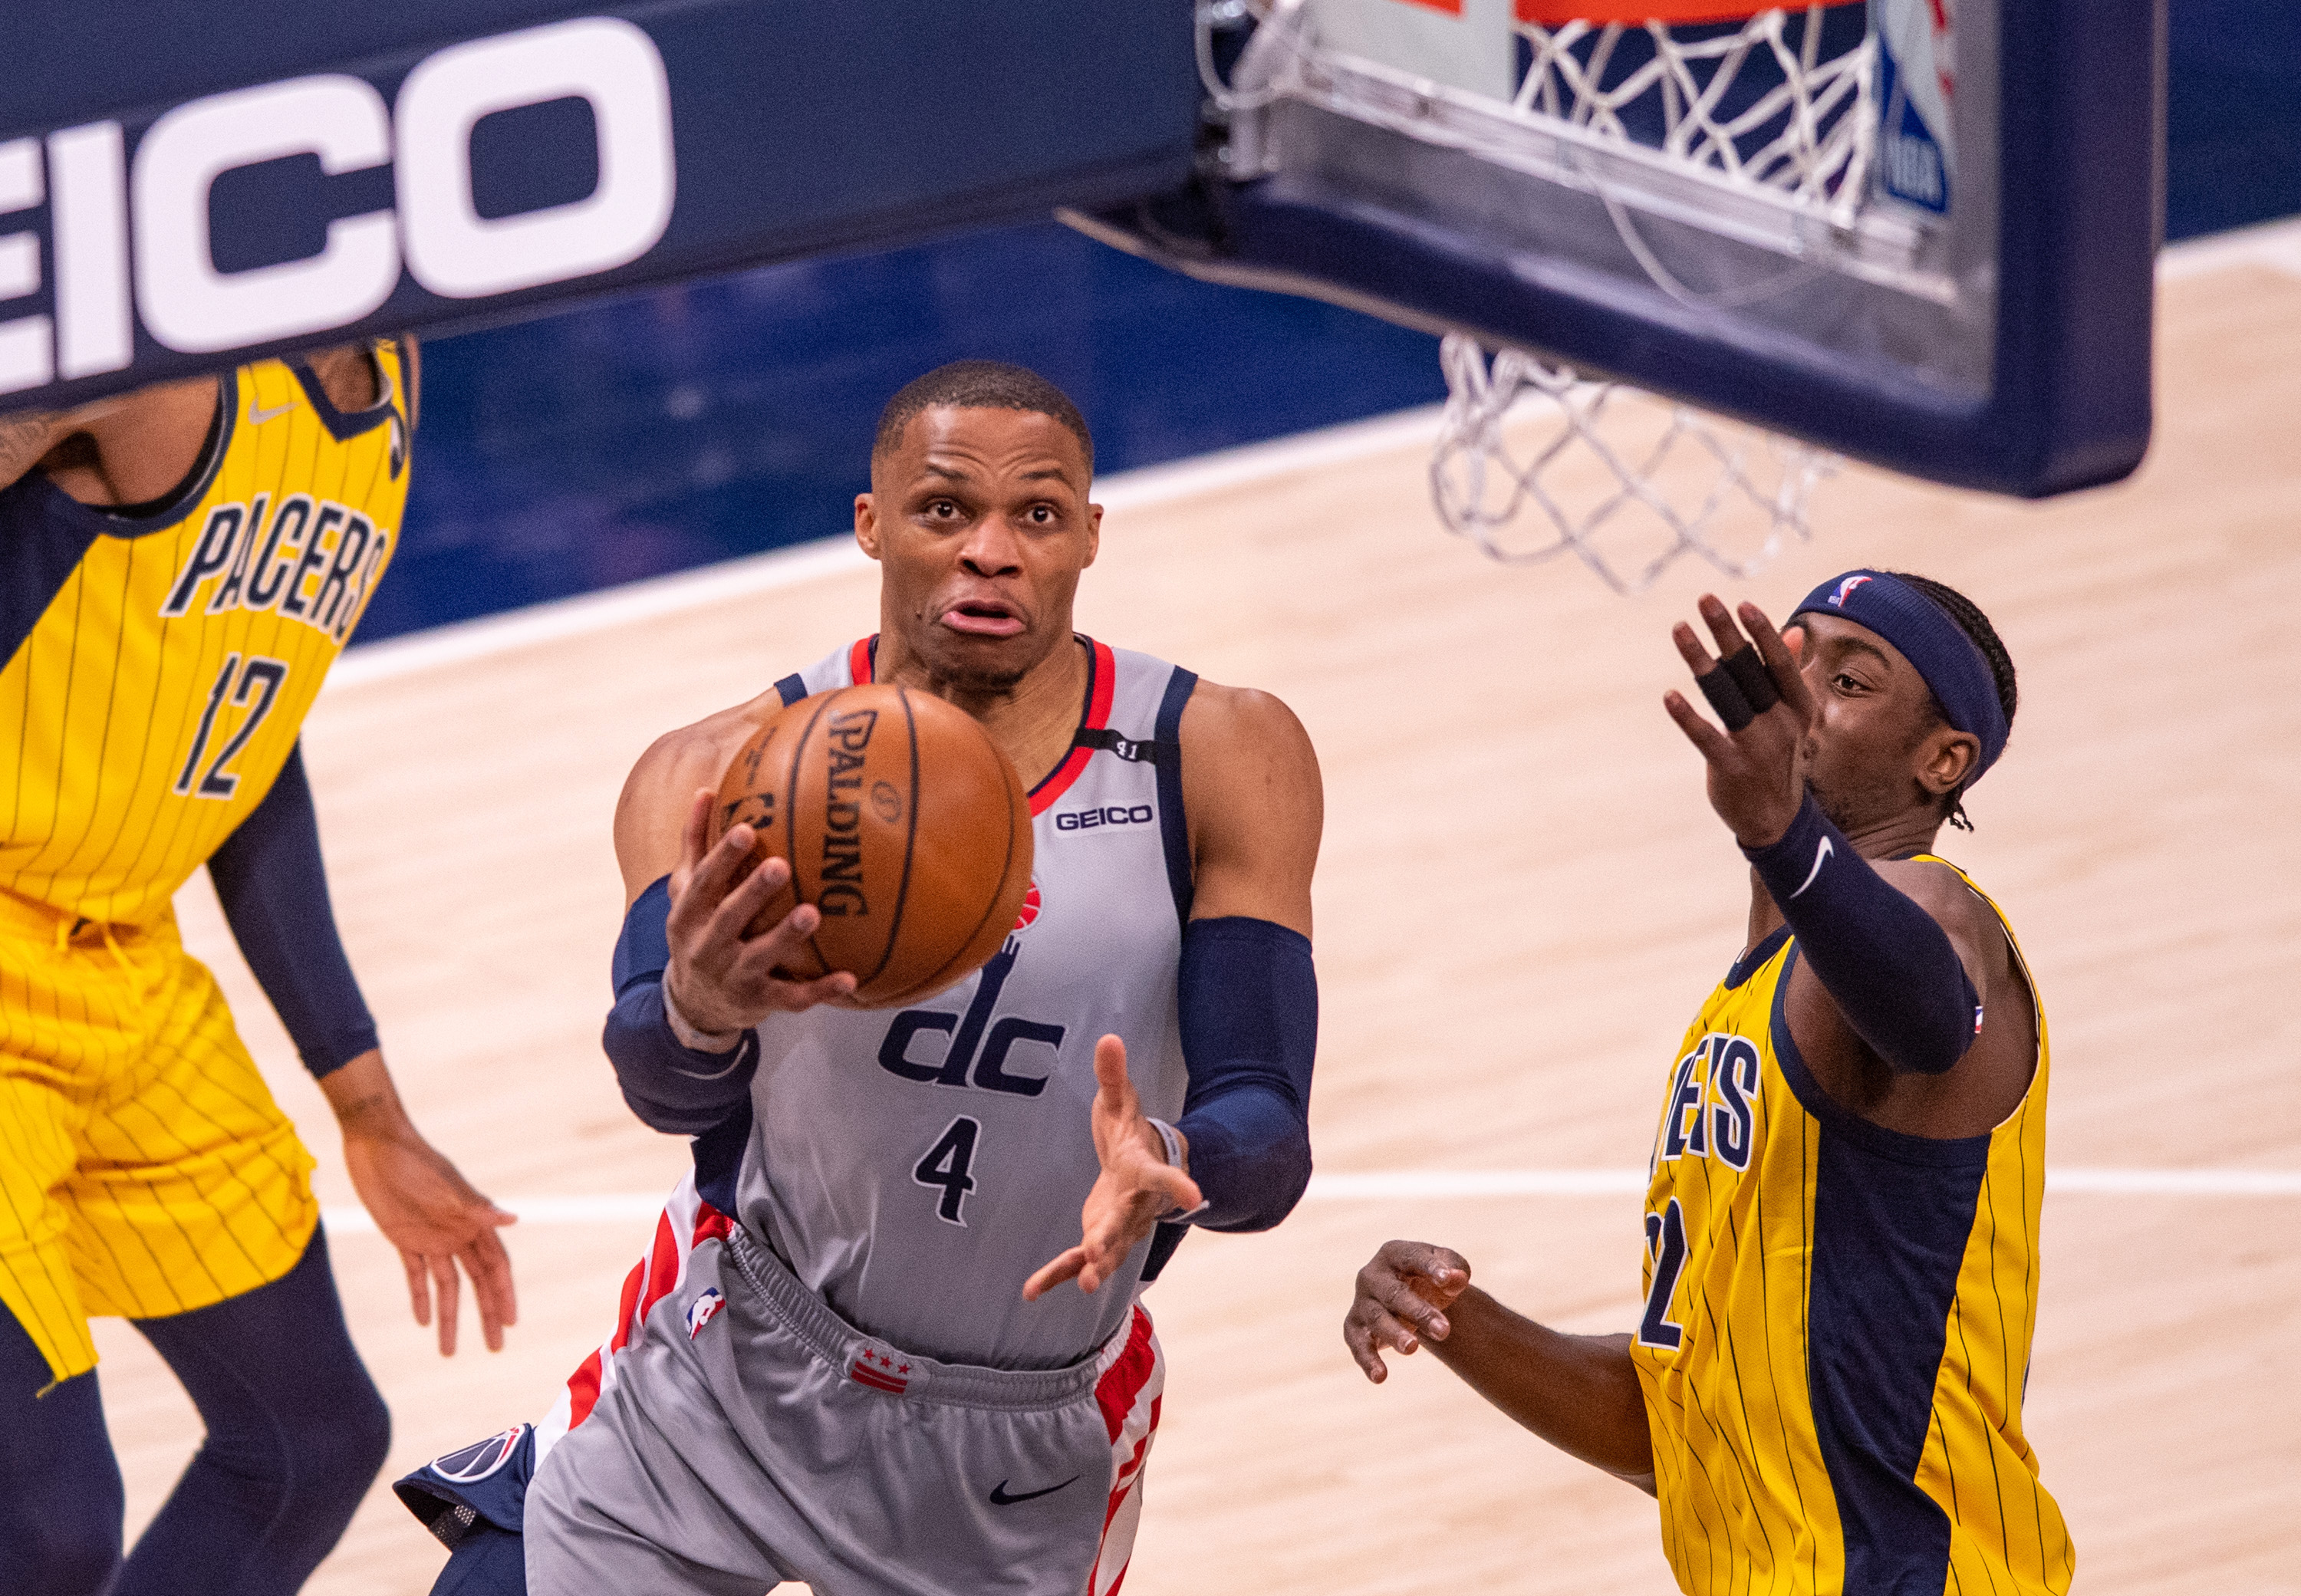 May 8, 2021; Indianapolis, Indiana, USA; Washington Wizards guard Russell Westbrook (4) drives to the basket during the second half of an NBA basketball game against the Indiana Pacers at Bankers Life Fieldhouse. Mandatory Credit: Doug McSchooler-USA TODAY Sports